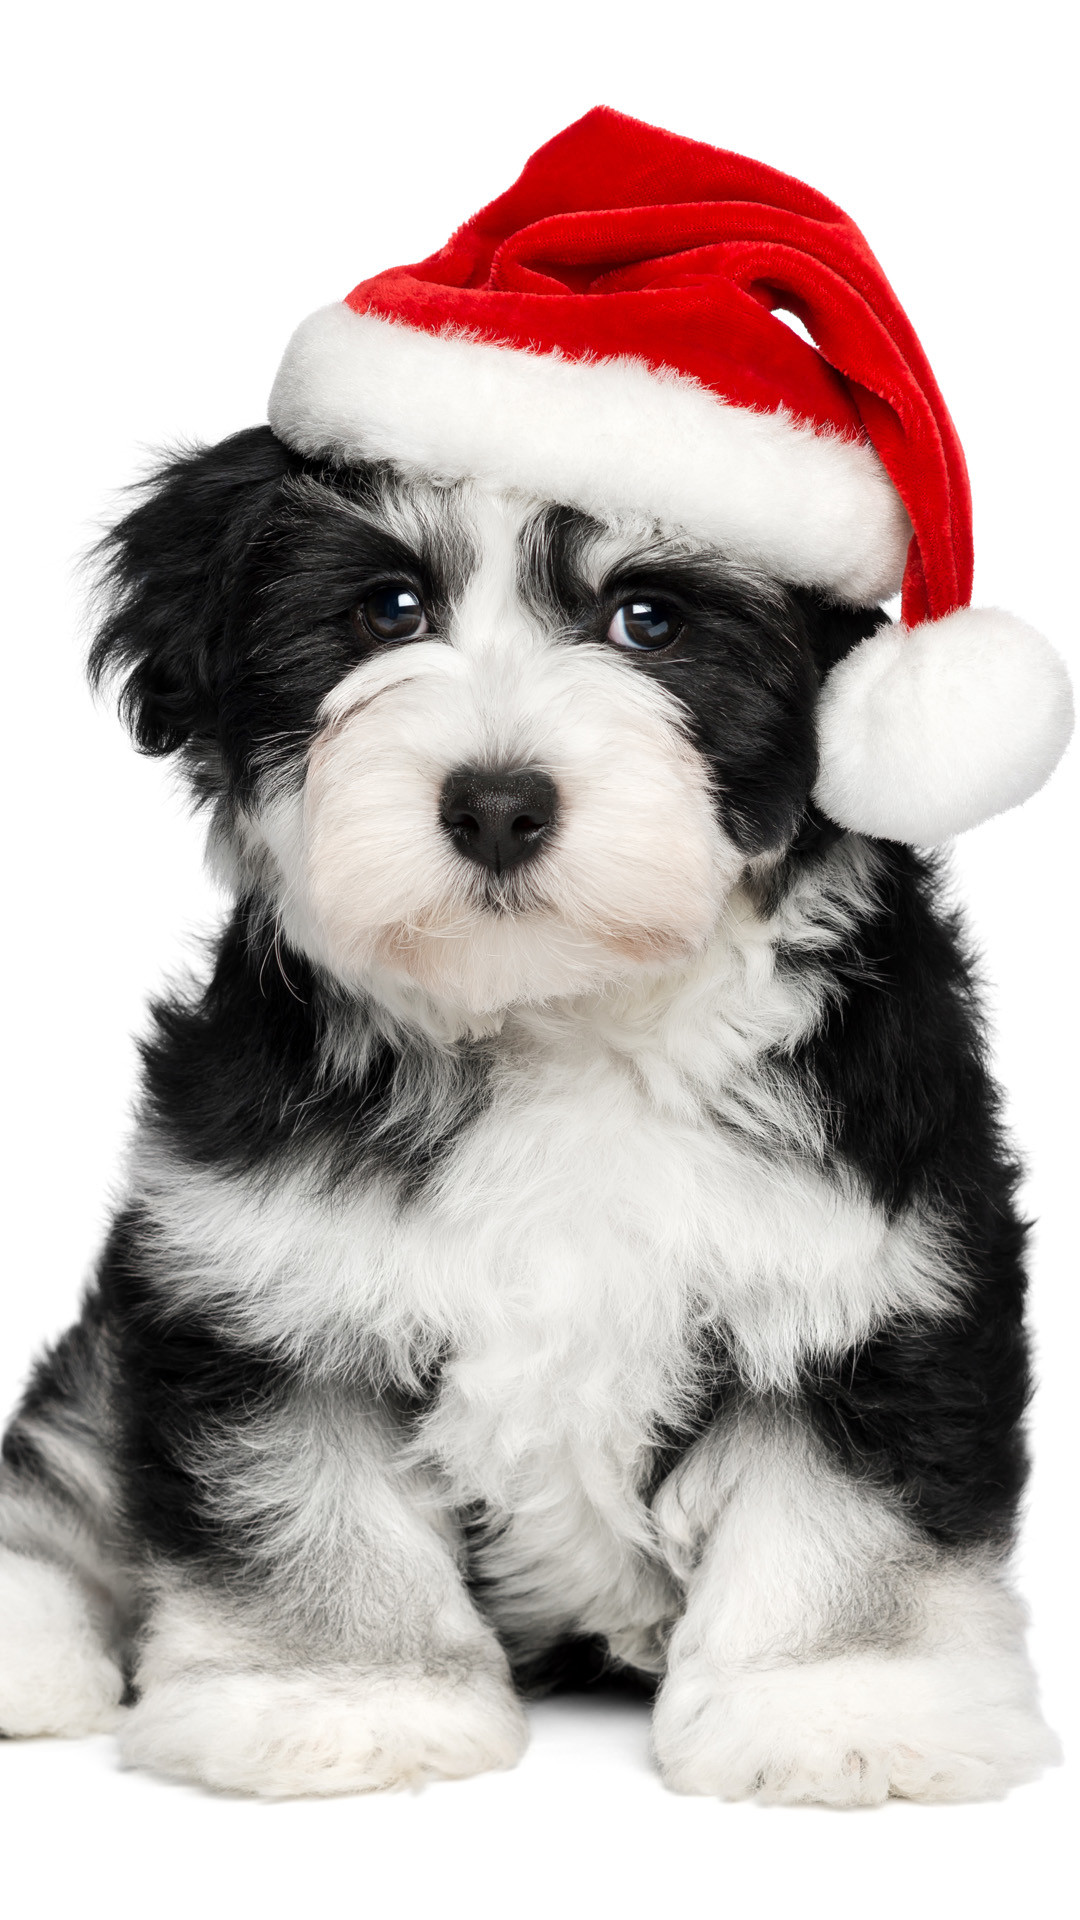 Christmas Wallpaper for iPhone (87+ images)